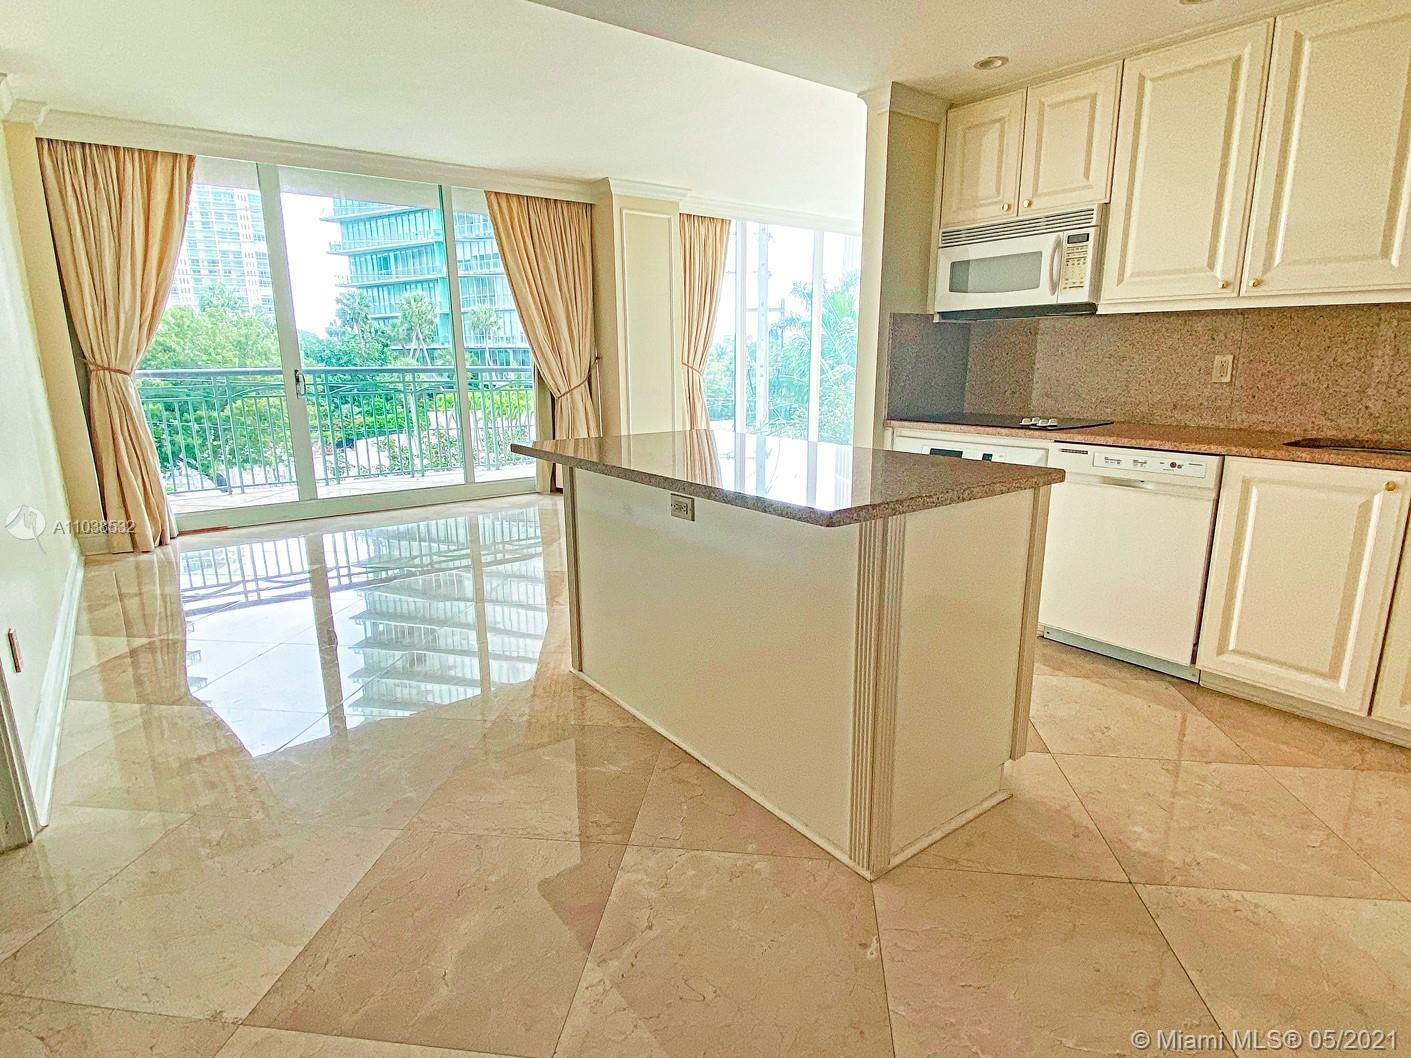 Indulge in luxury living at the Ritz-Carlton Residences in Coconut Grove. 2 bed, 2.5 bath unit with